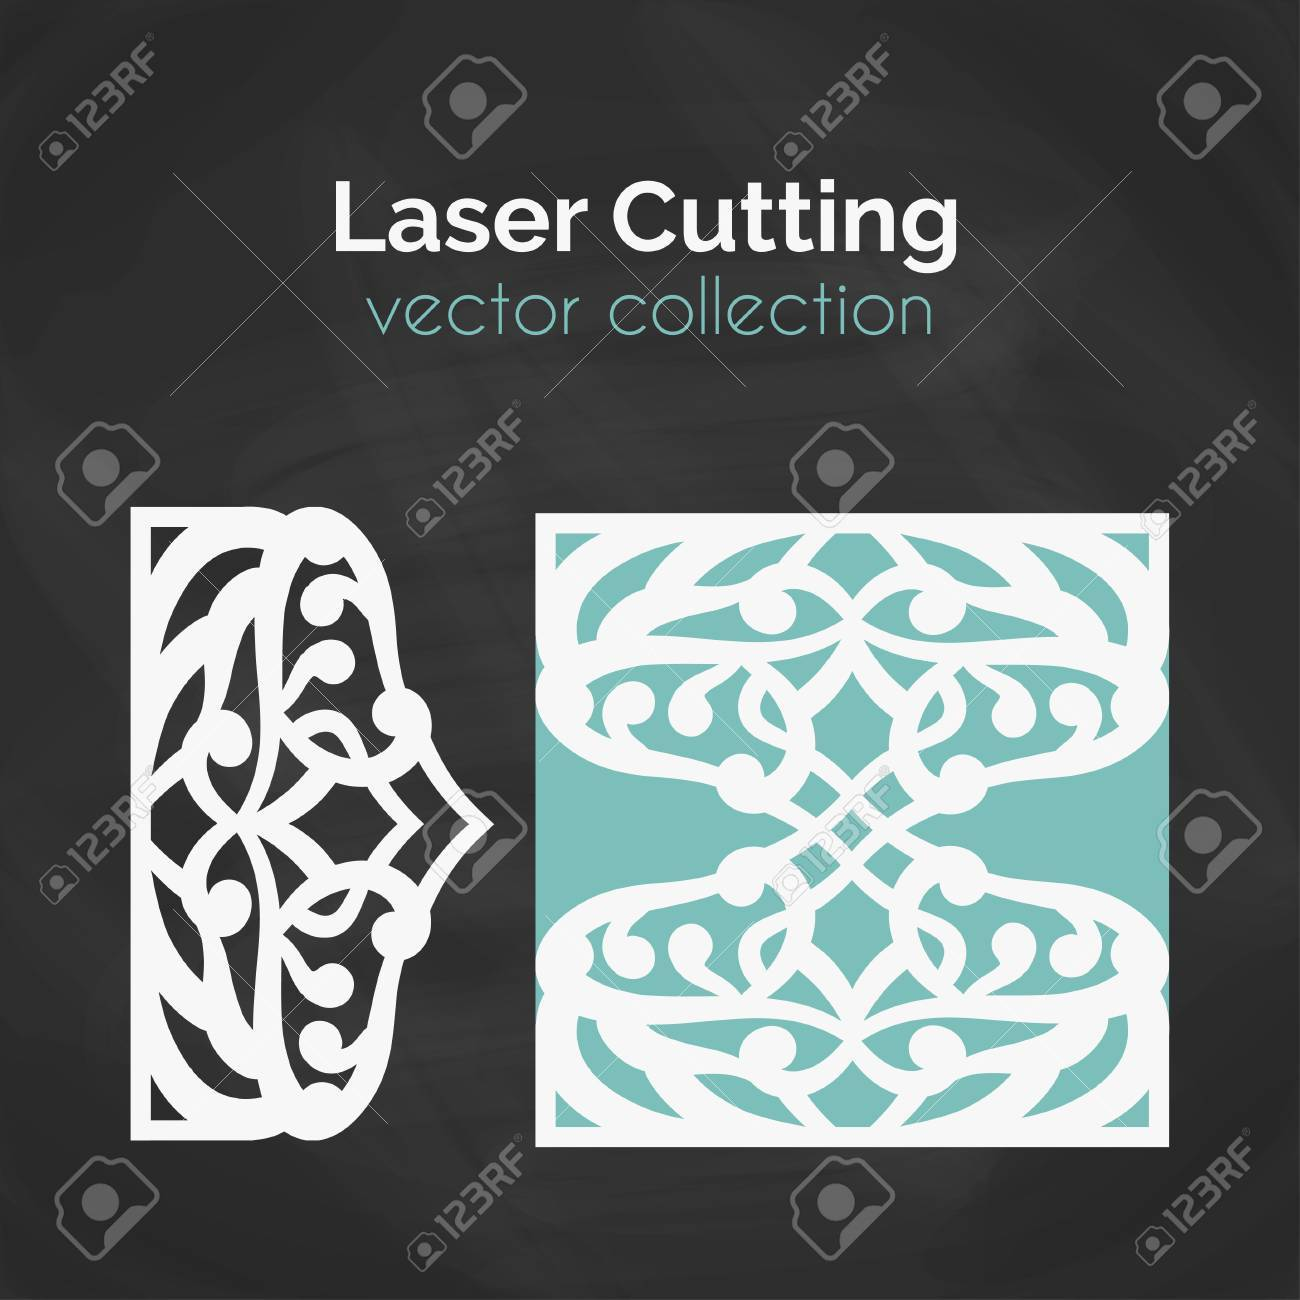 Laser Cut Card Template For Laser Cutting Cutout Illustration